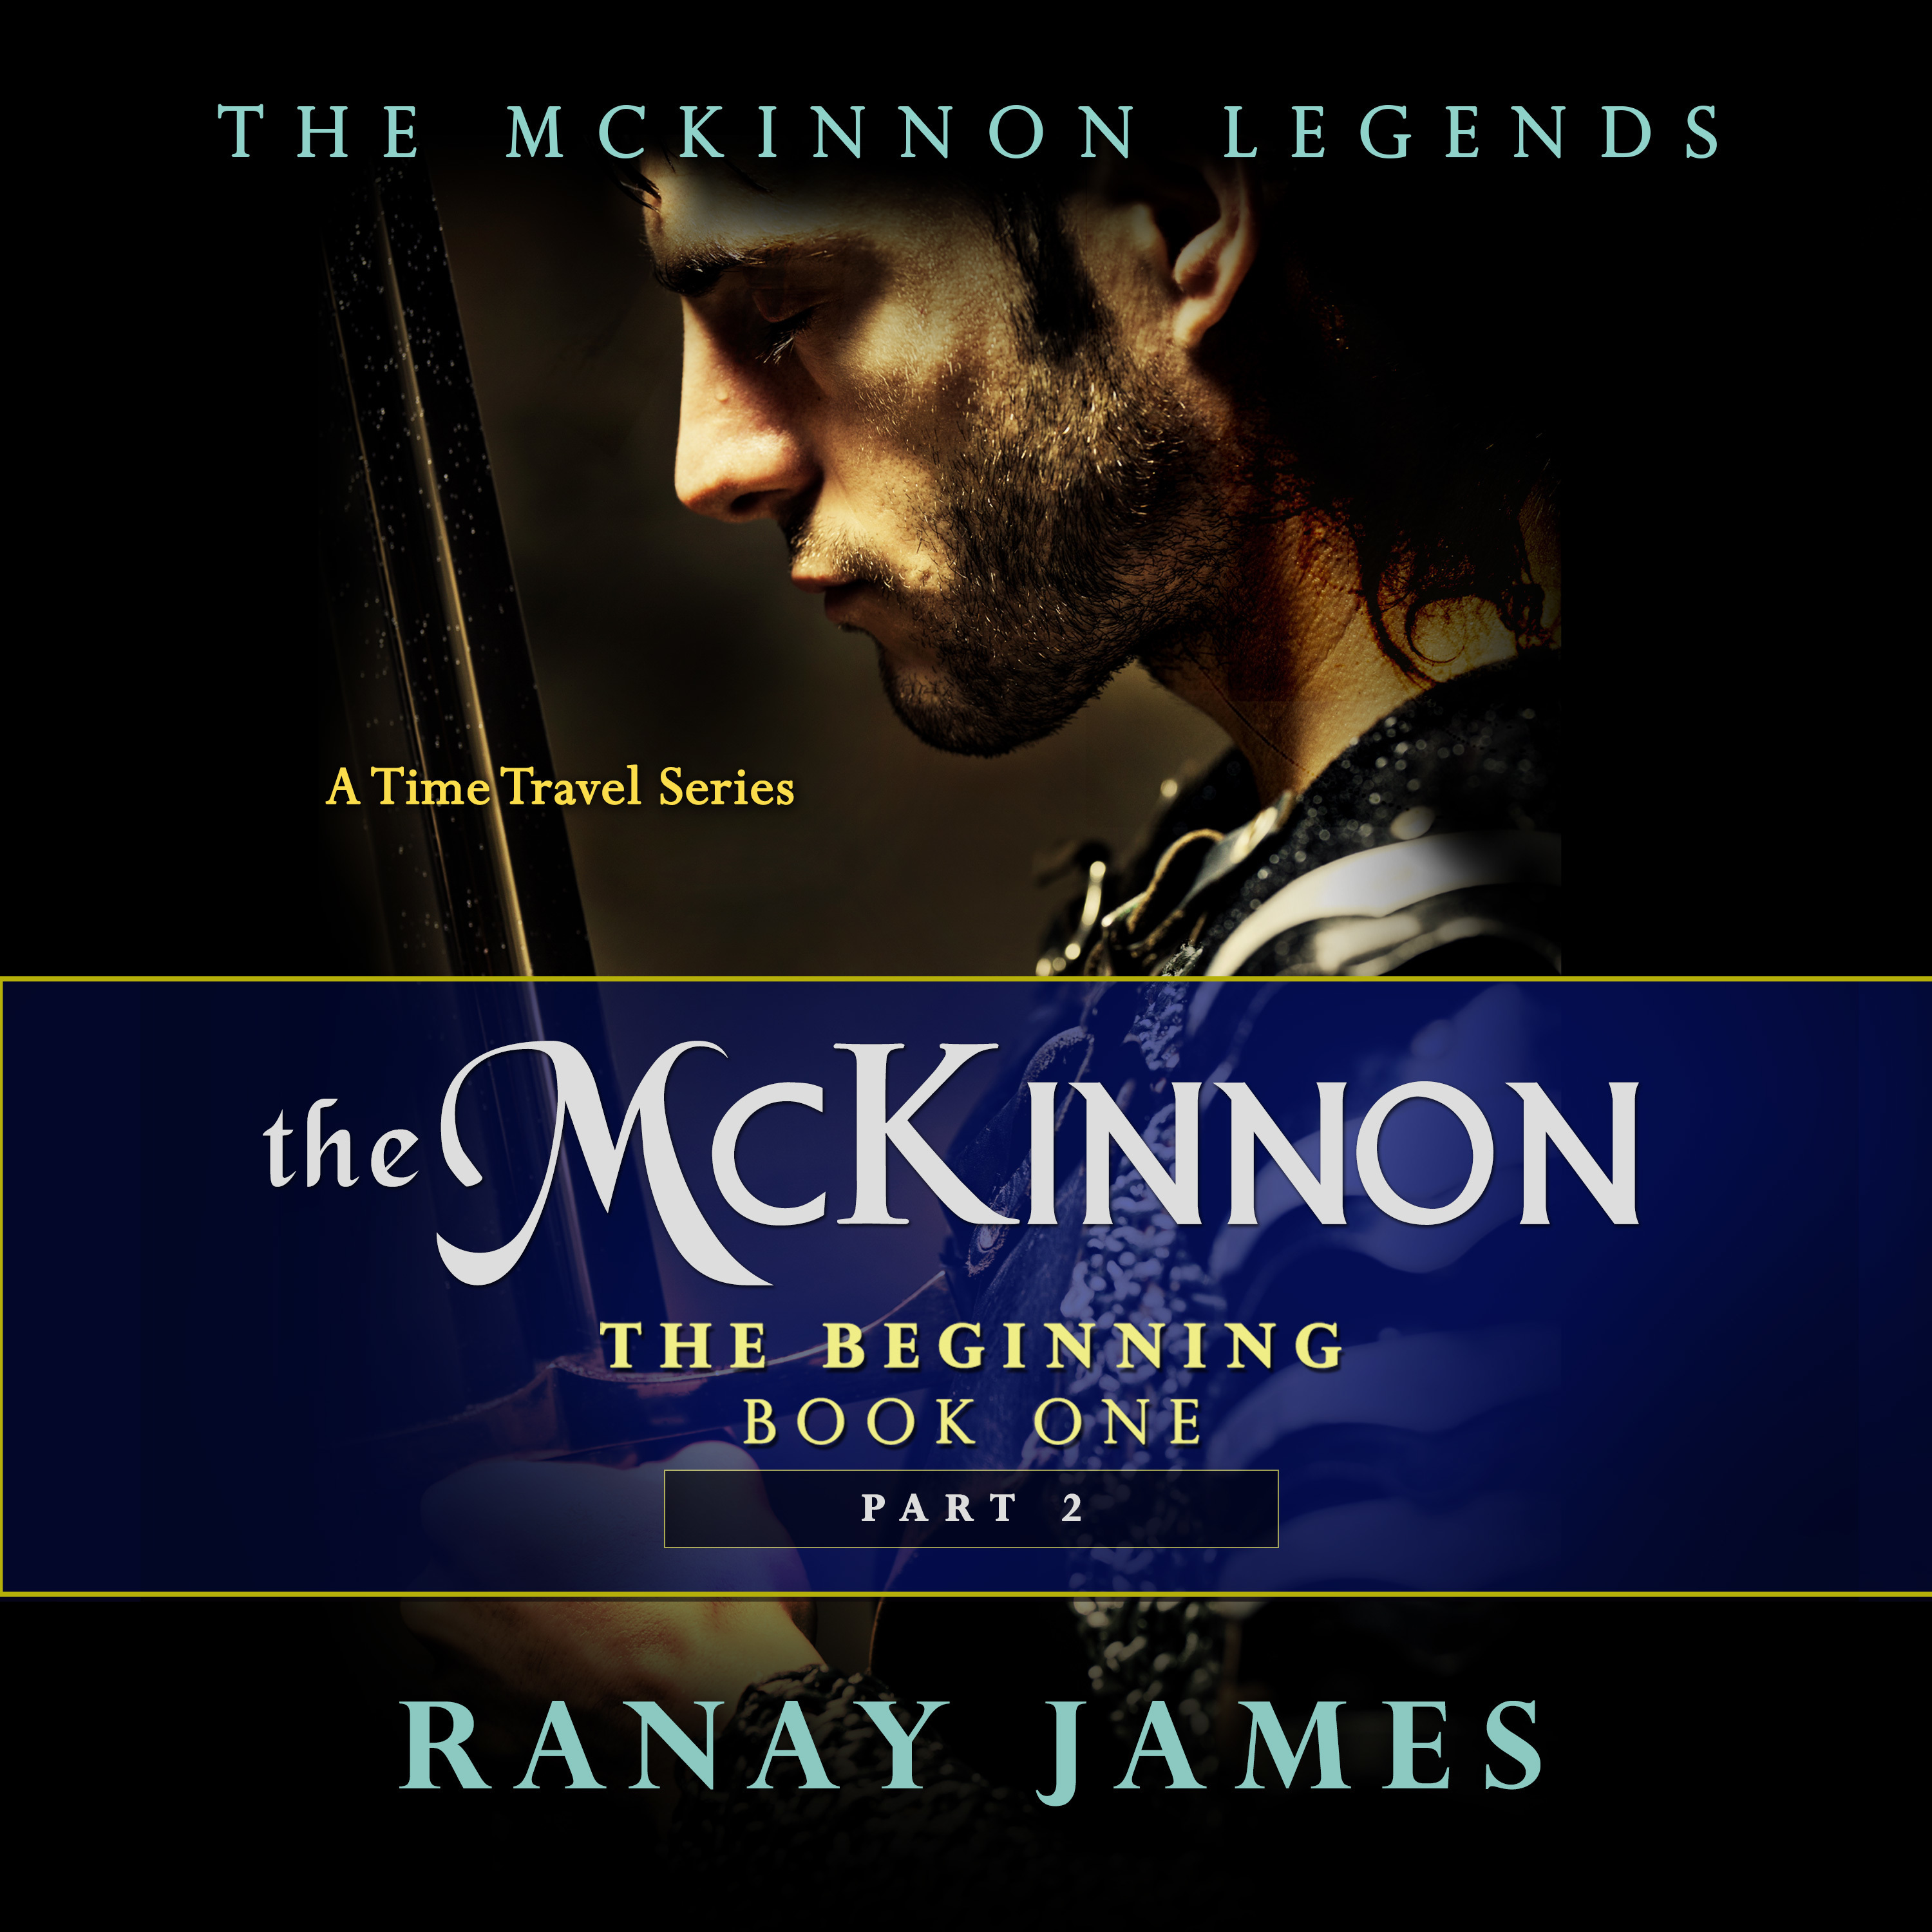 Printable The McKinnon: The Beginning: Book 1 Part 2 : The McKinnon Legends: A Time Travel Series Audiobook Cover Art